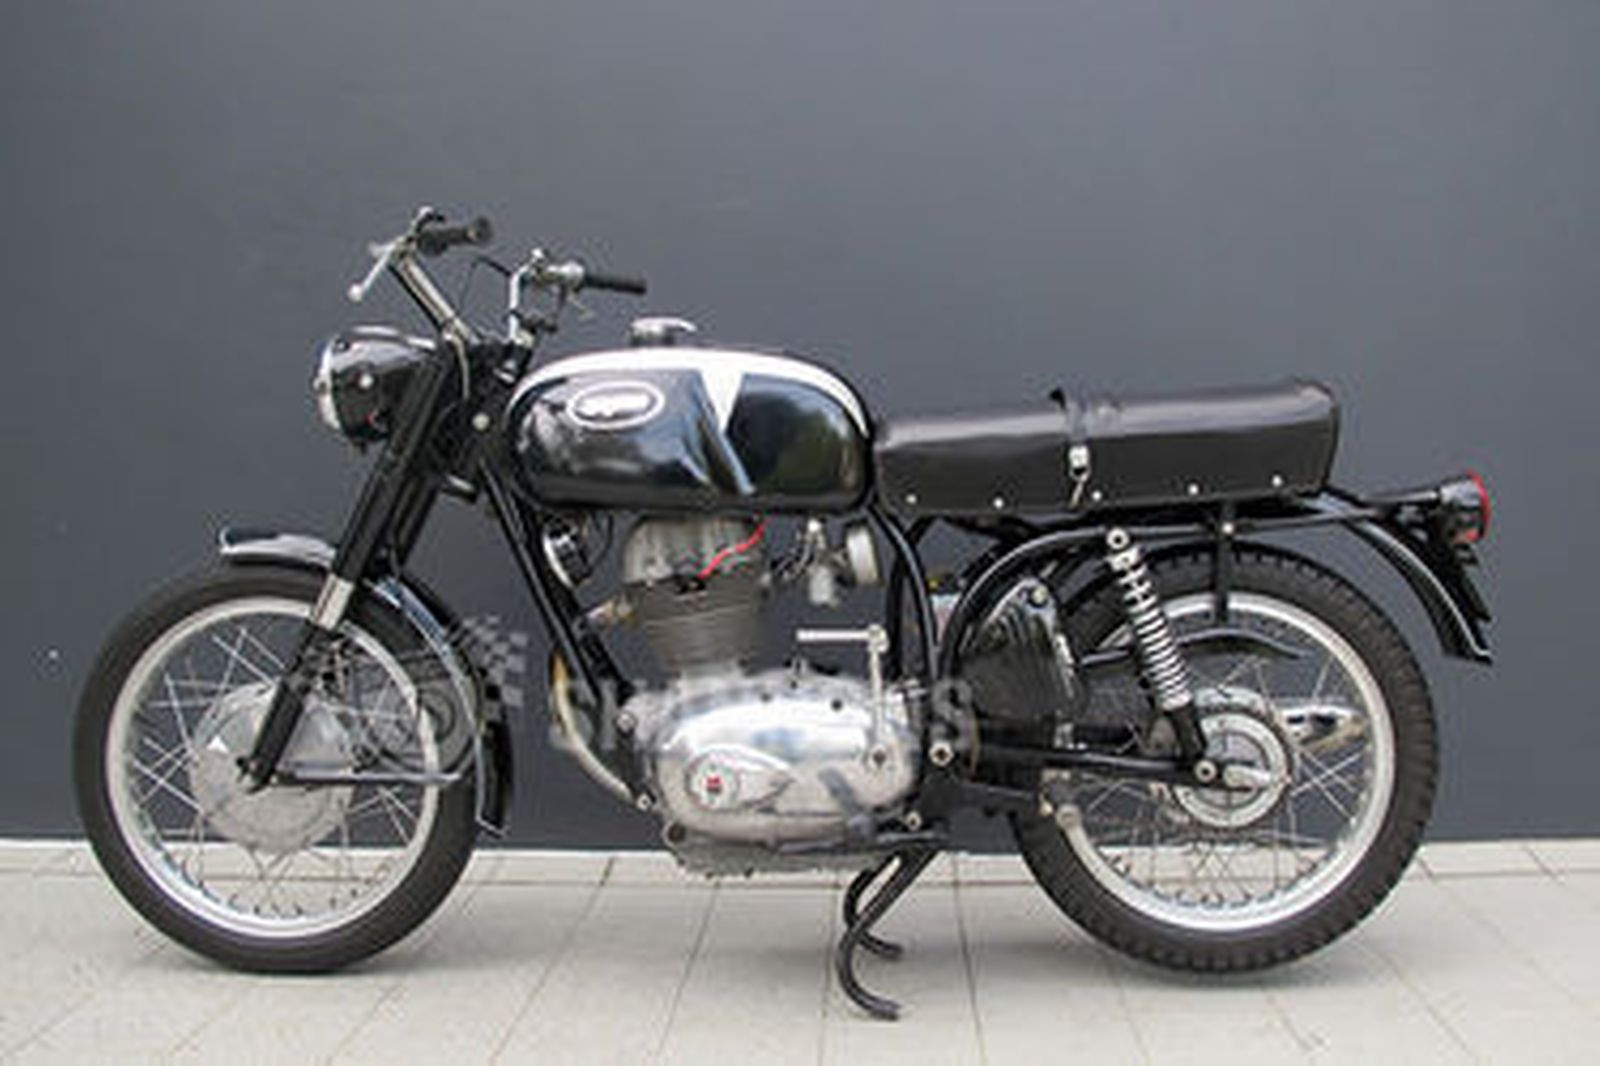 Sold: Benelli 'Montgomery Wards' 250cc Motorcycle Auctions